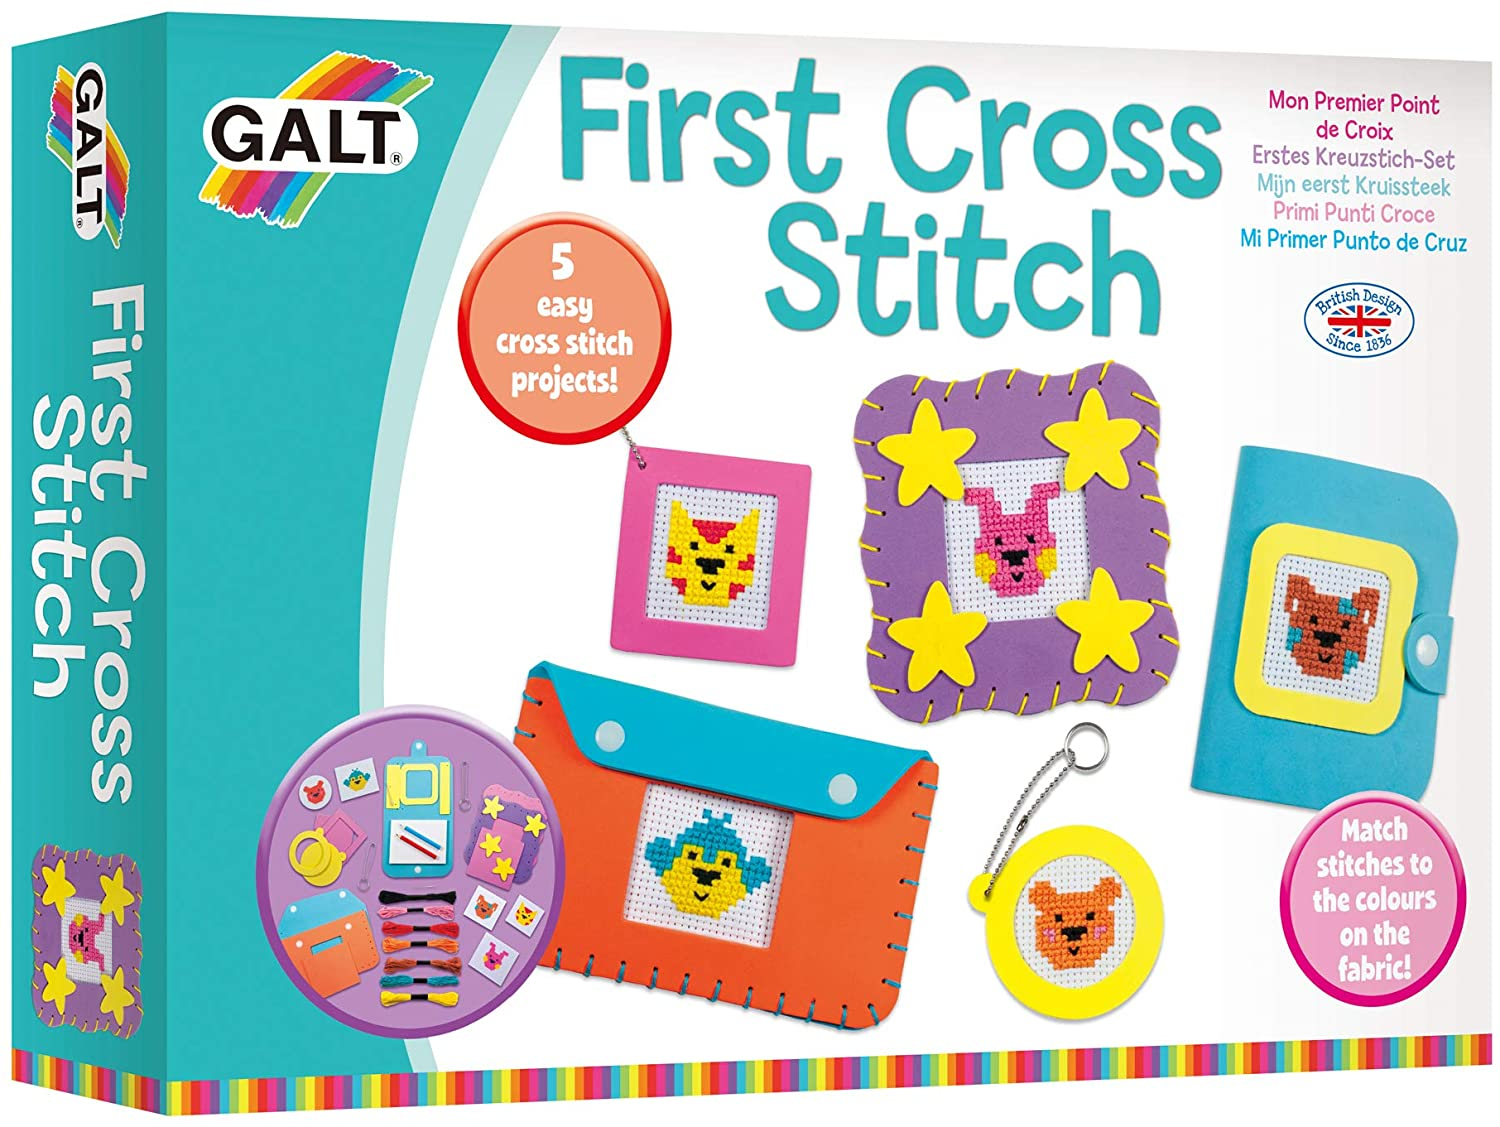 BOX DAMAGED - Galt Toys First Cross Stitch, Embroidery Craft Kit for Children